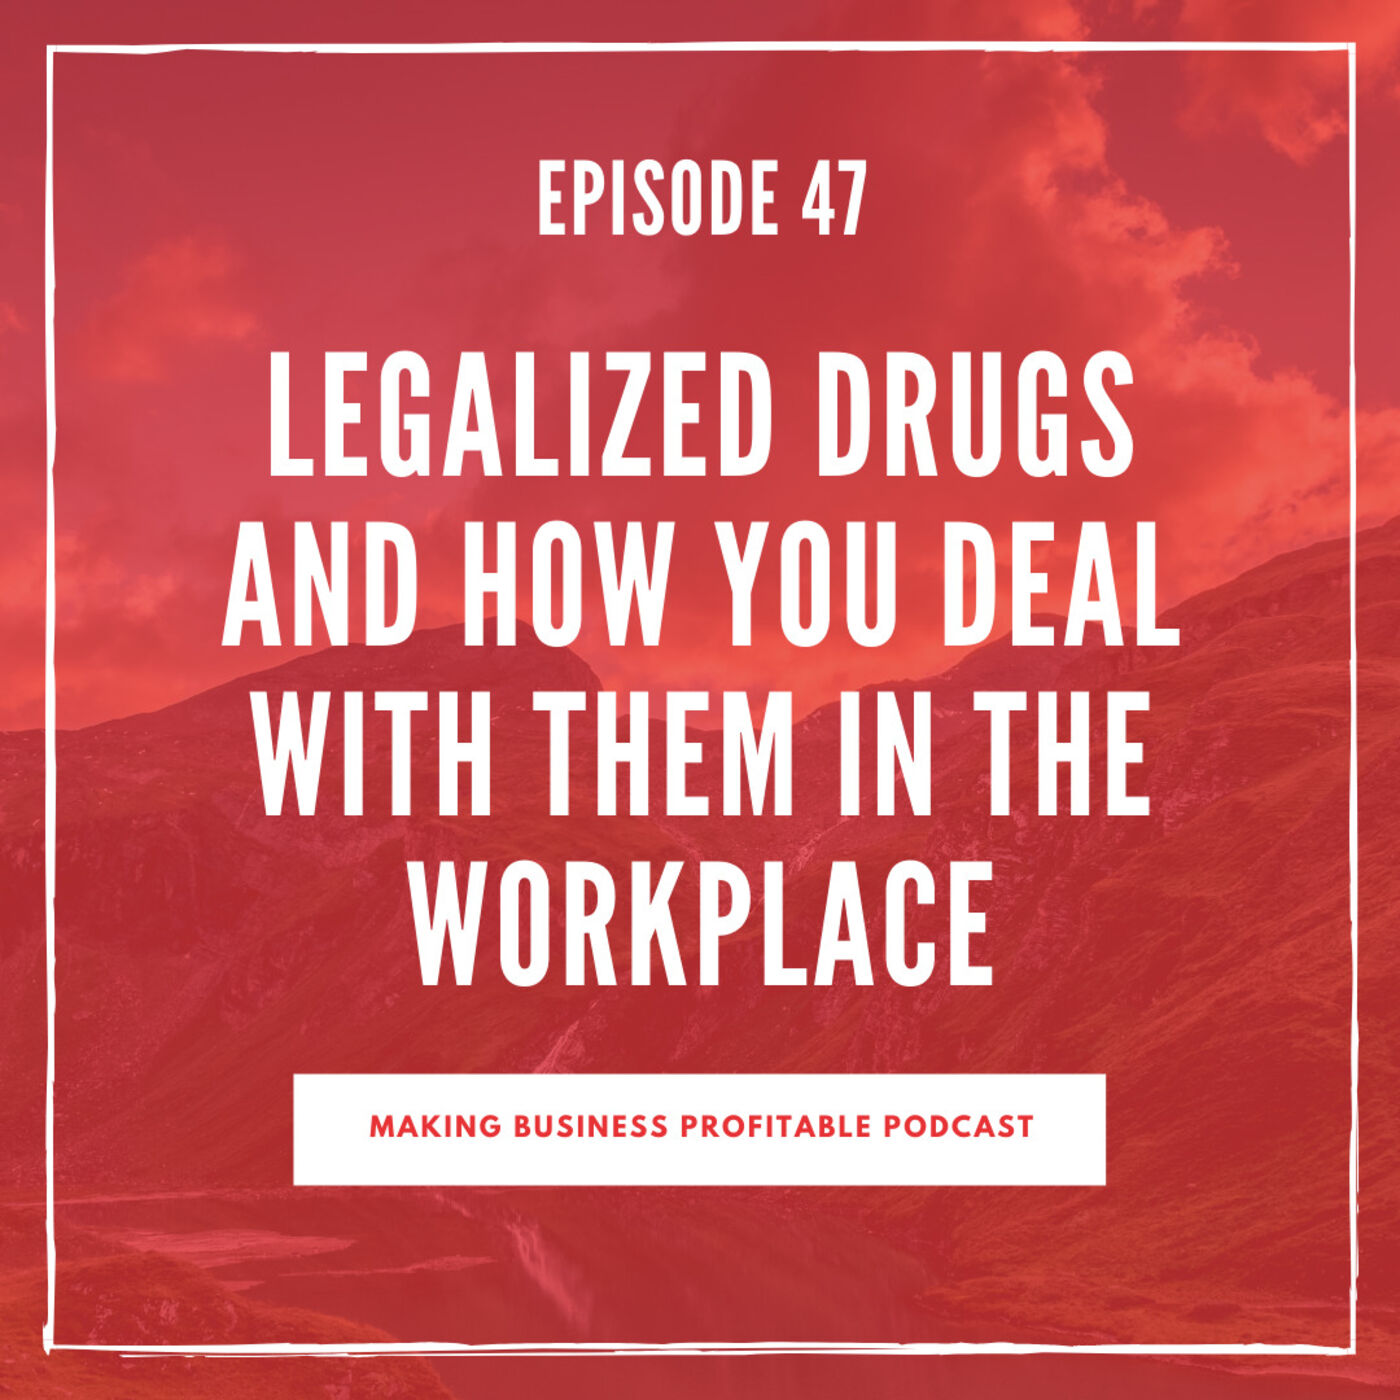 Episode 47 - Legalized Drugs and how you deal wiith them in the workplace